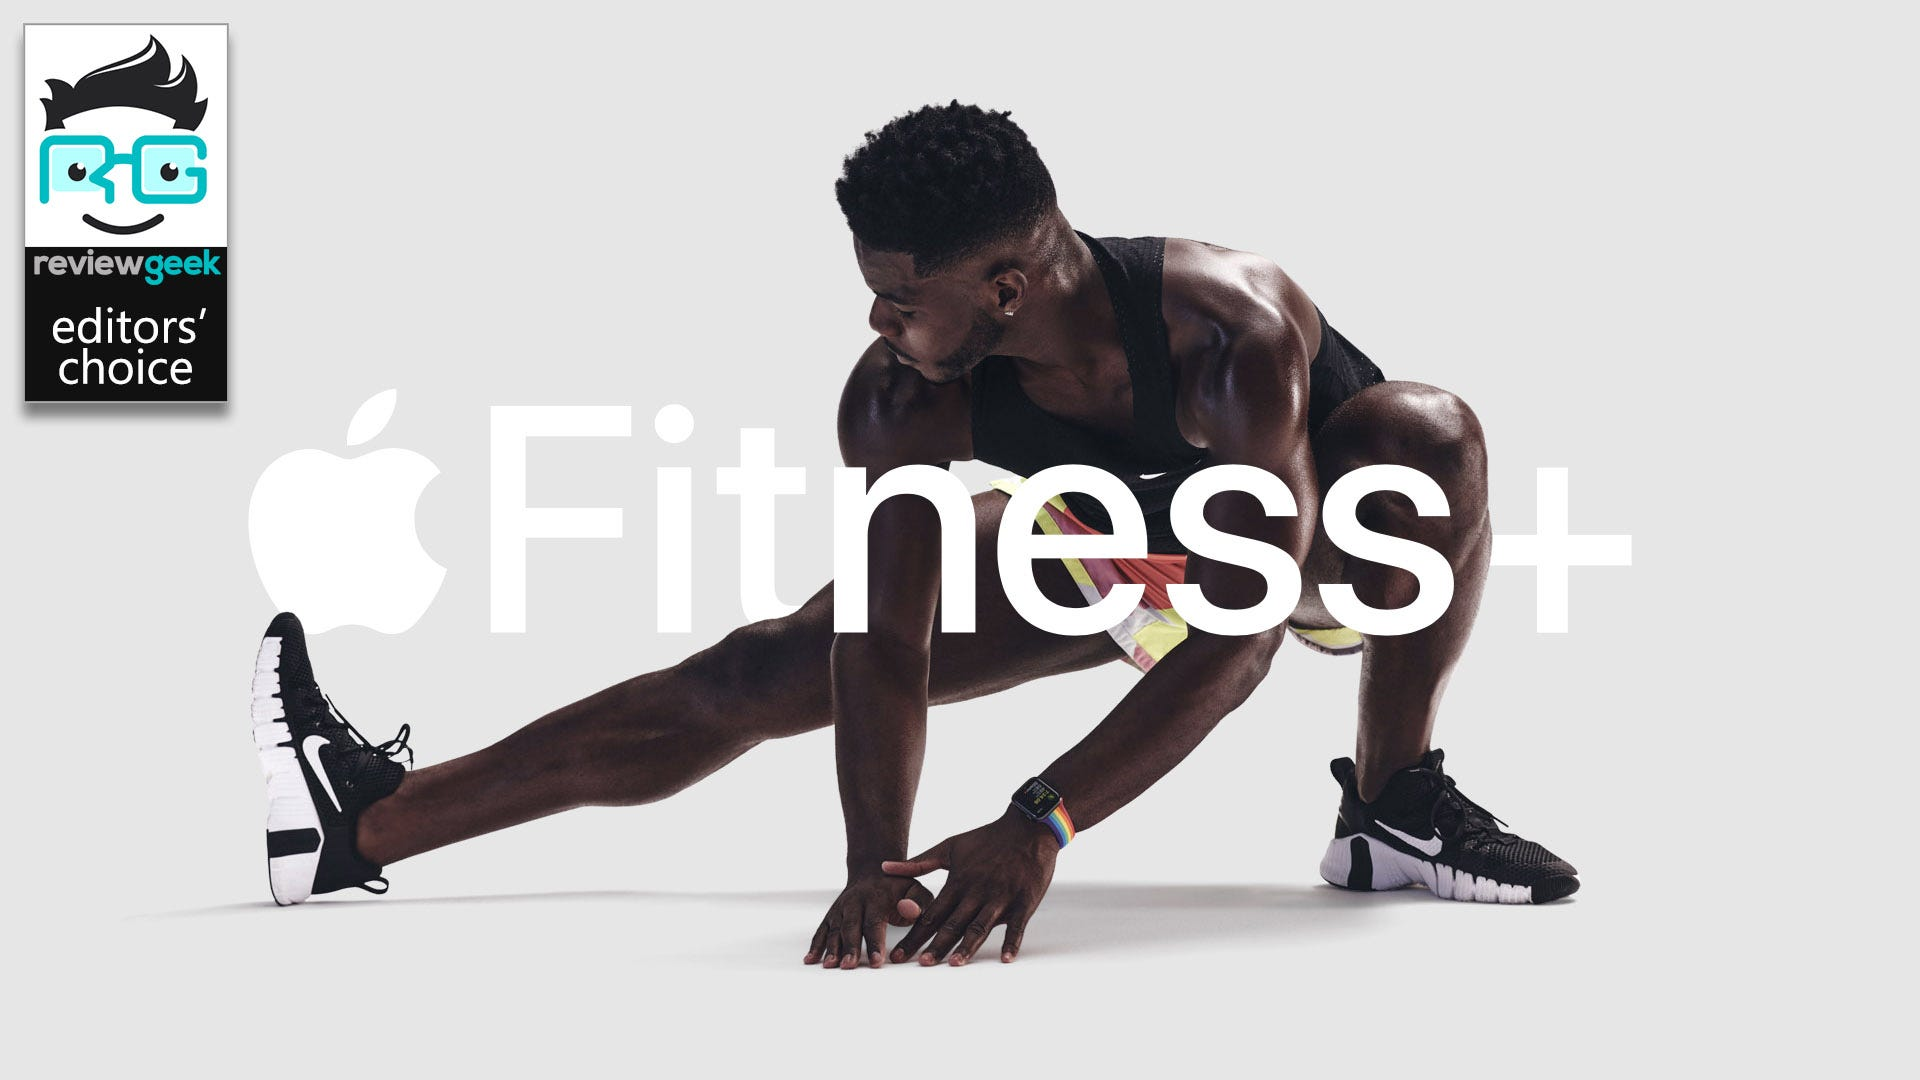 The Apple Fitness+ logo with a black man working out